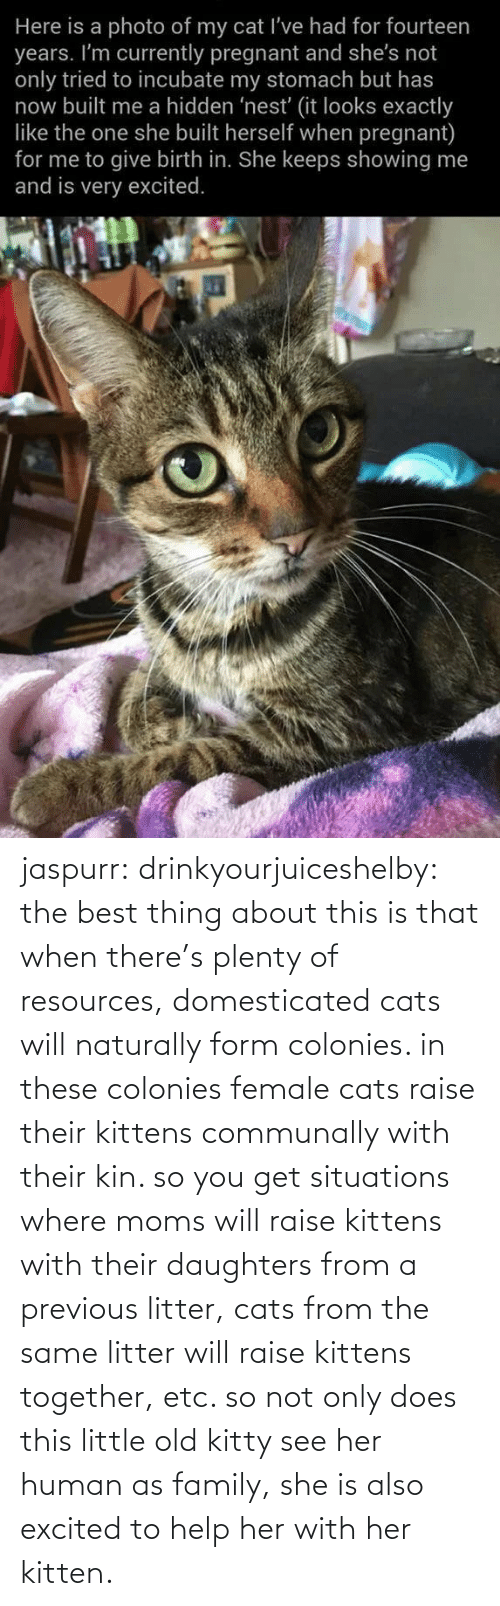 this is: jaspurr:  drinkyourjuiceshelby:    the best thing about this is that when there's plenty of resources, domesticated cats will naturally form colonies. in these colonies female cats raise their kittens communally with their kin. so you get situations where moms will raise kittens with their daughters from a previous litter, cats from the same litter will raise kittens together, etc. so not only does this little old kitty see her human as family, she is also excited to help her with her kitten.